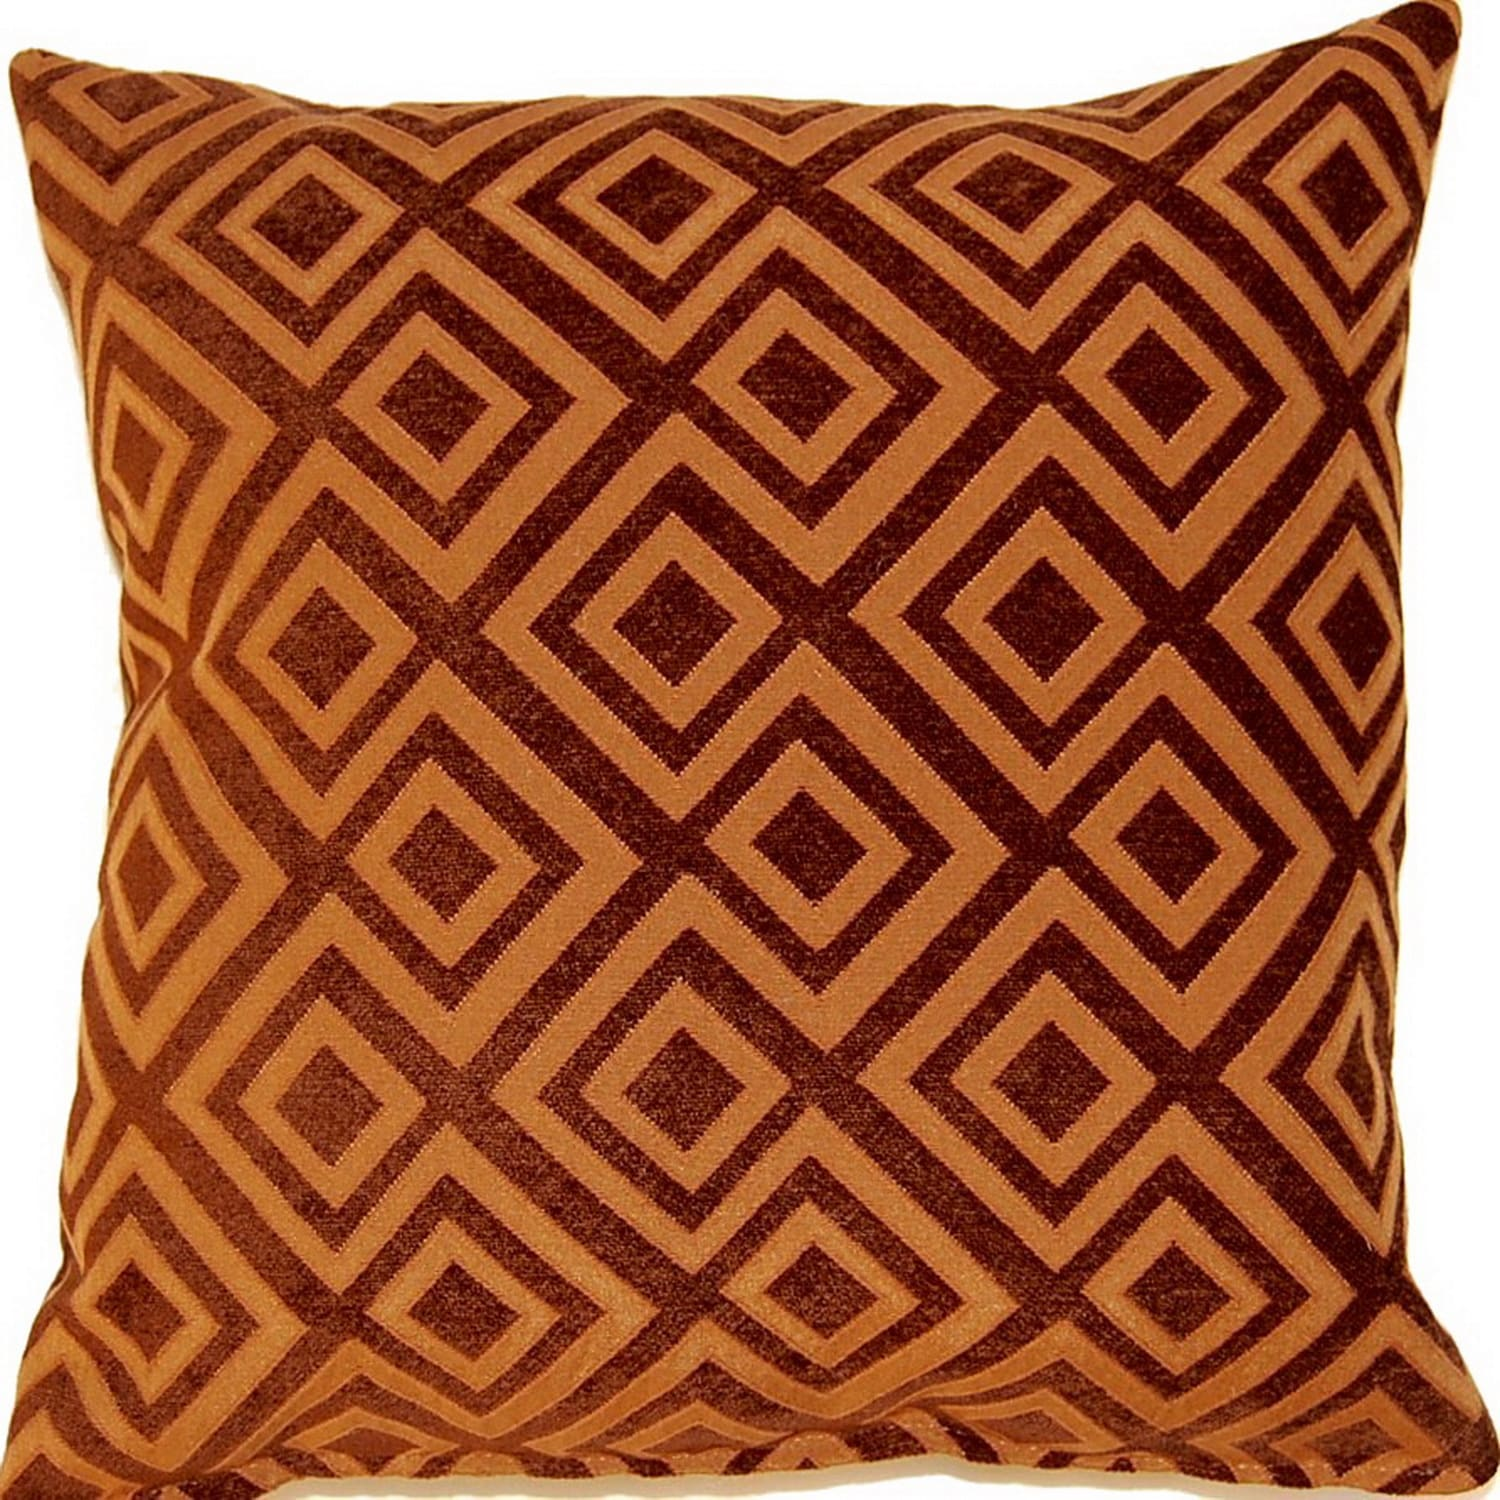 Fox Hill Trading Kira Pumpkin 17-inch Throw Pillows (Set of 2)